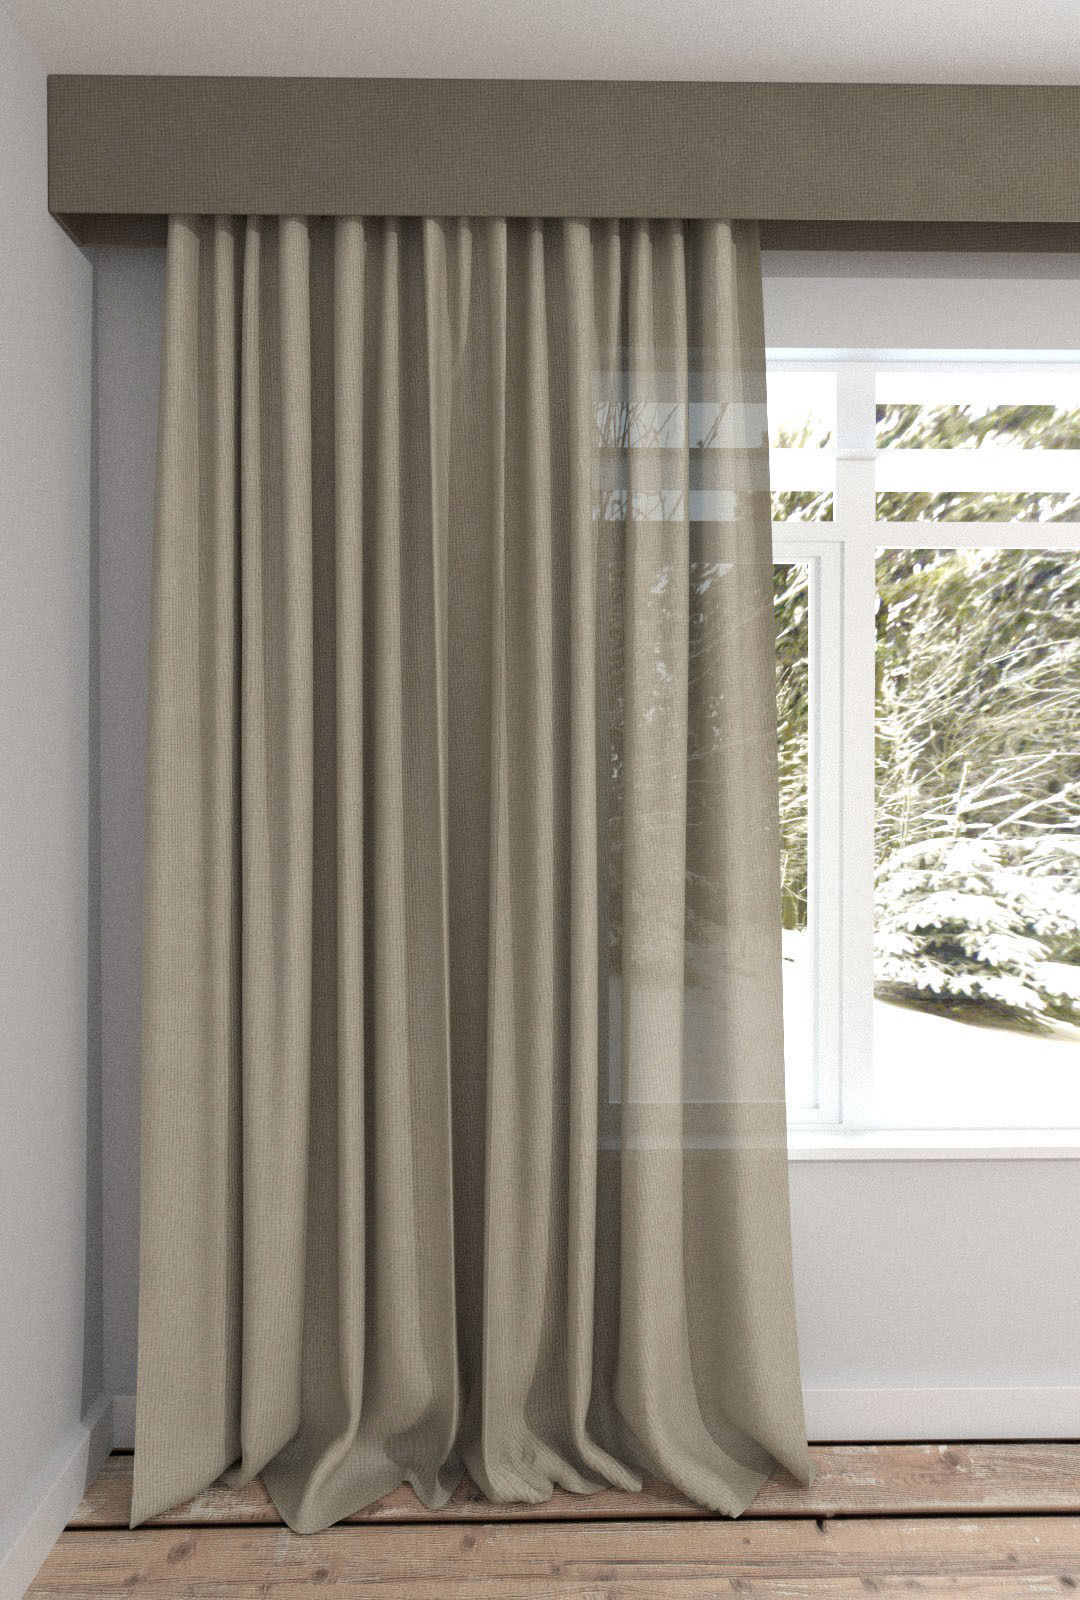 p modern dark curtain design curtains green